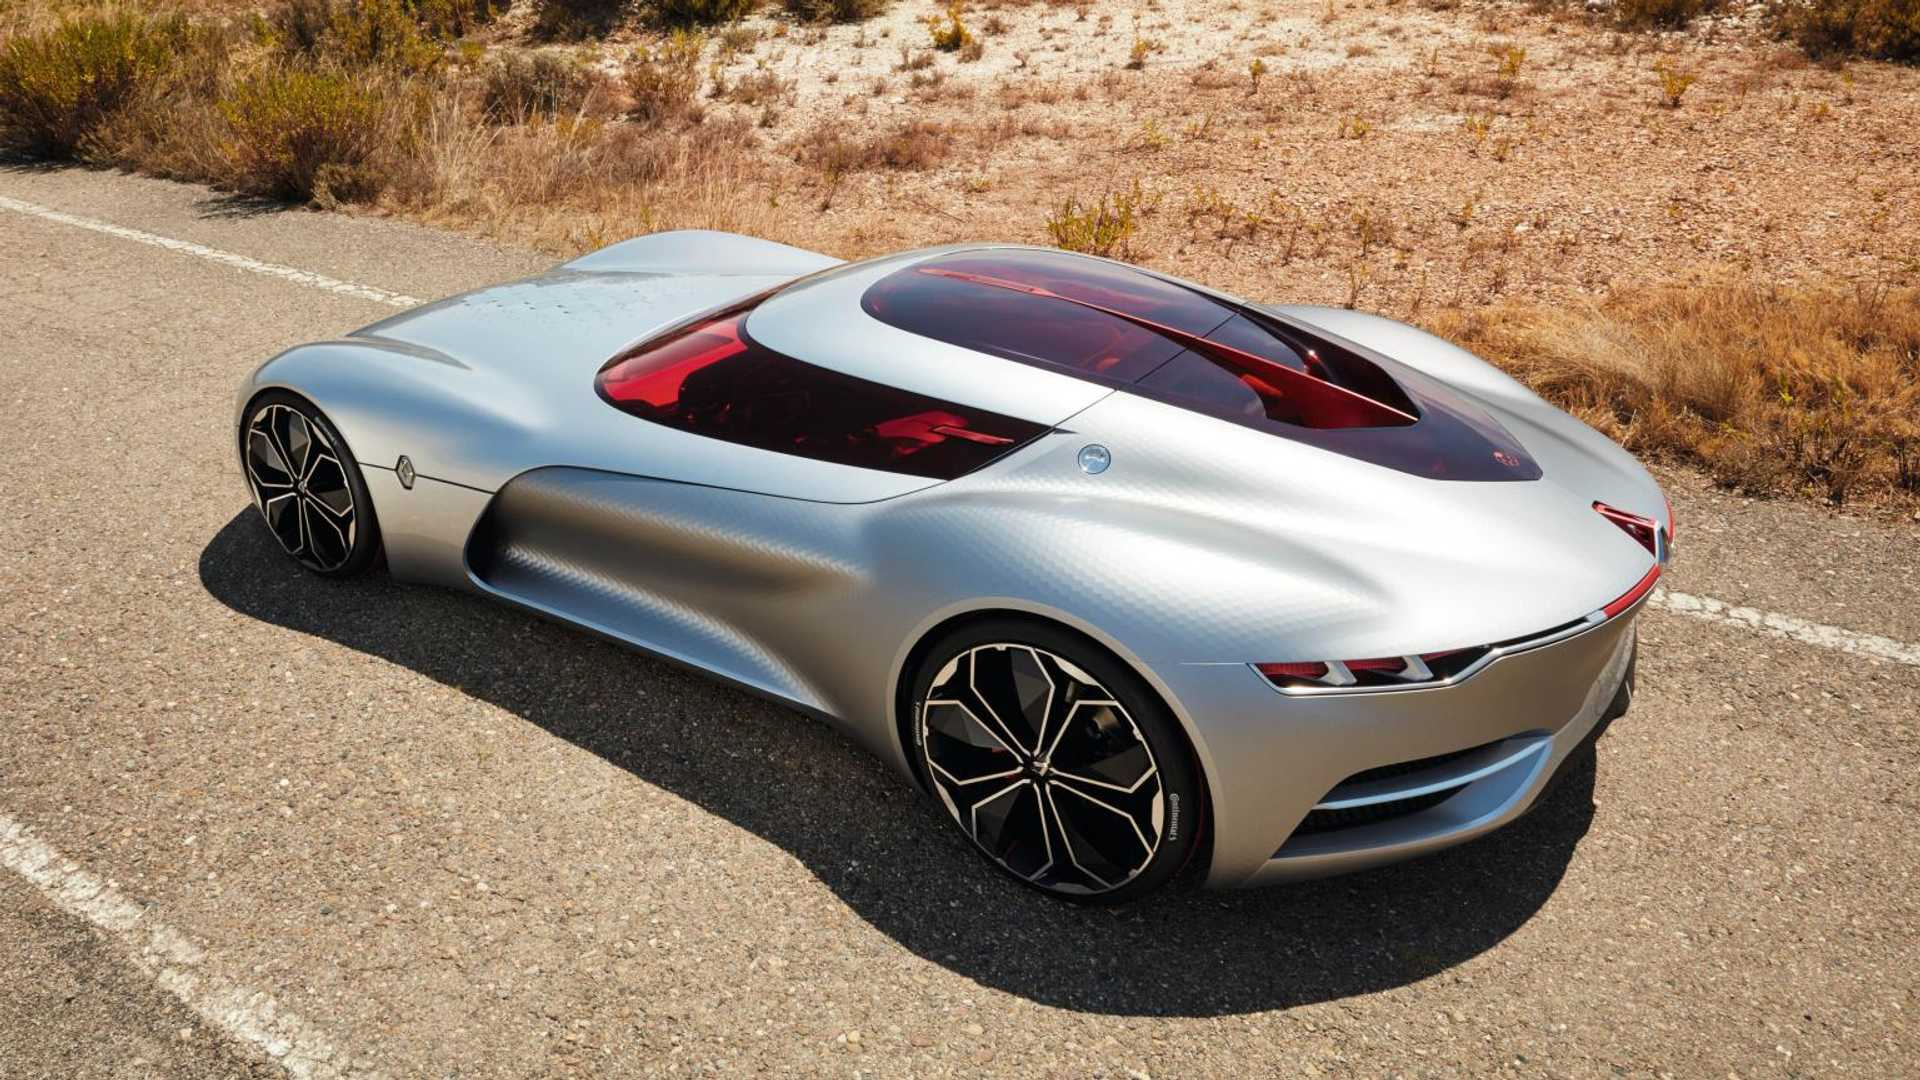 Electric Renault Trezor Wins Concept Car Design Of The Year Award